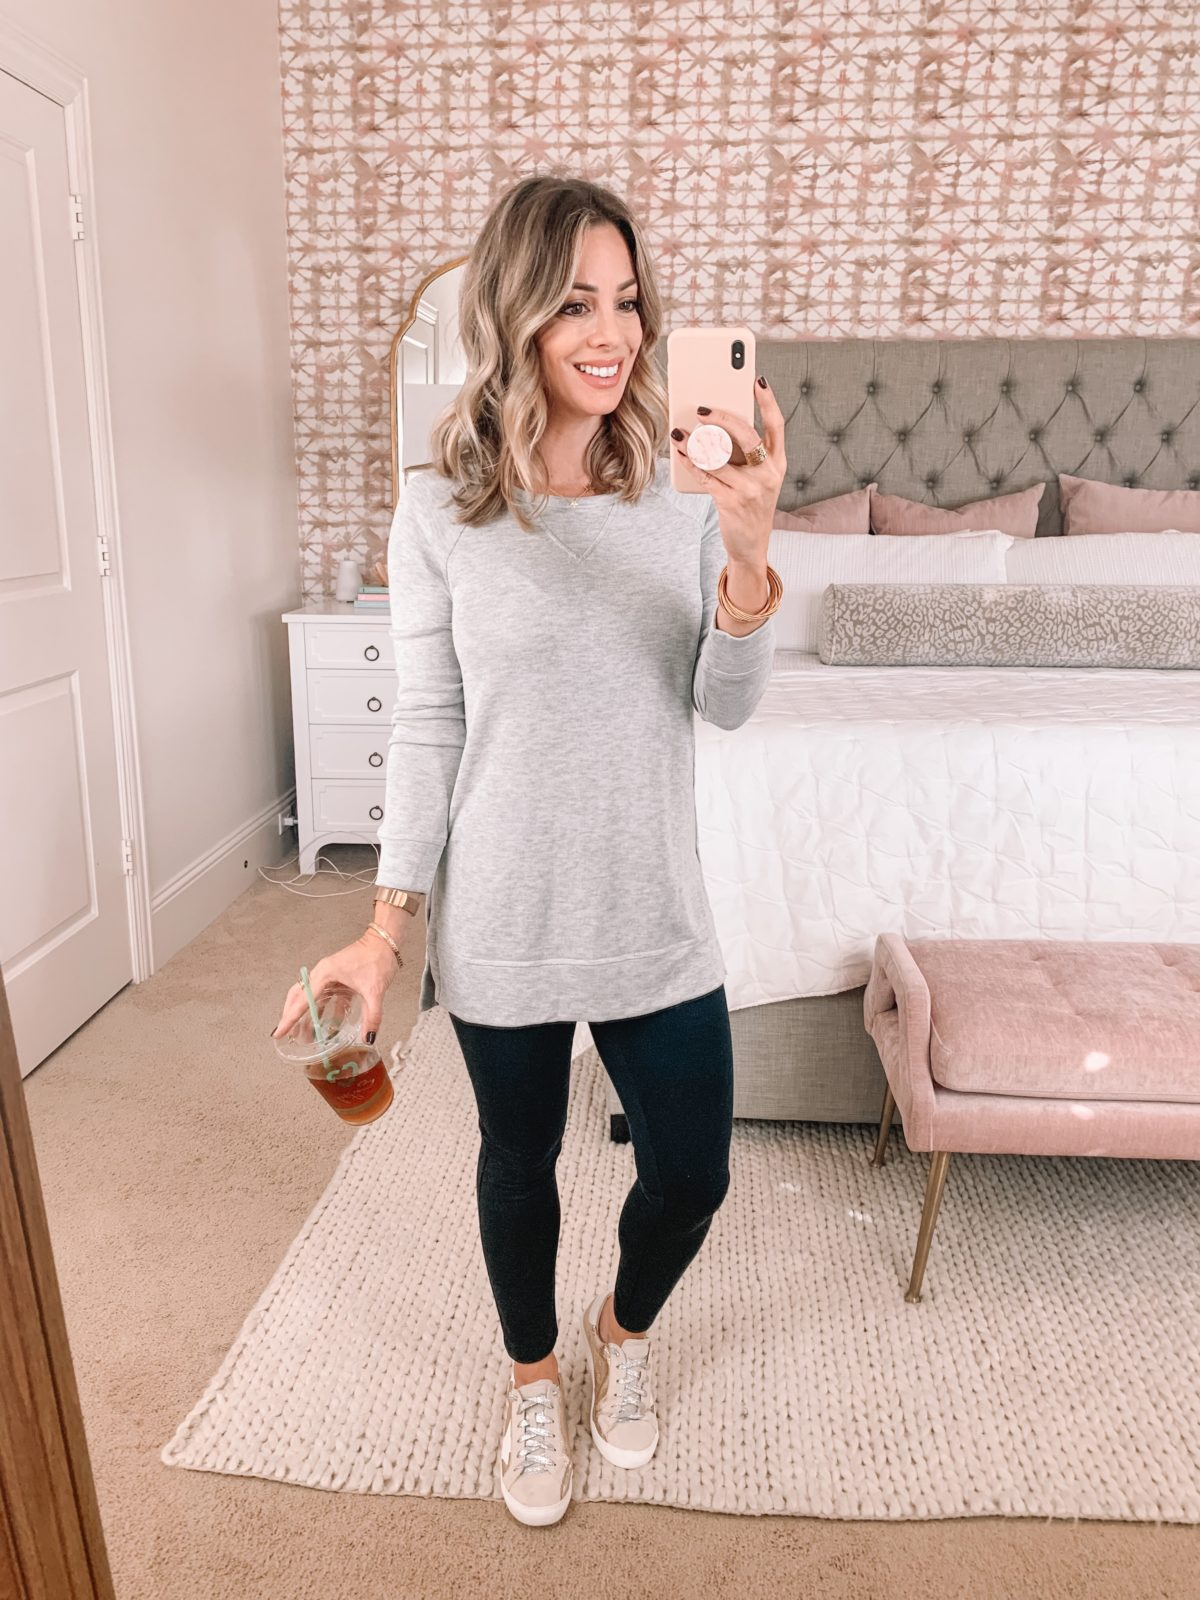 Amazon Fashion Faves, Tunic Sweatshirt, Sneakers, leggings